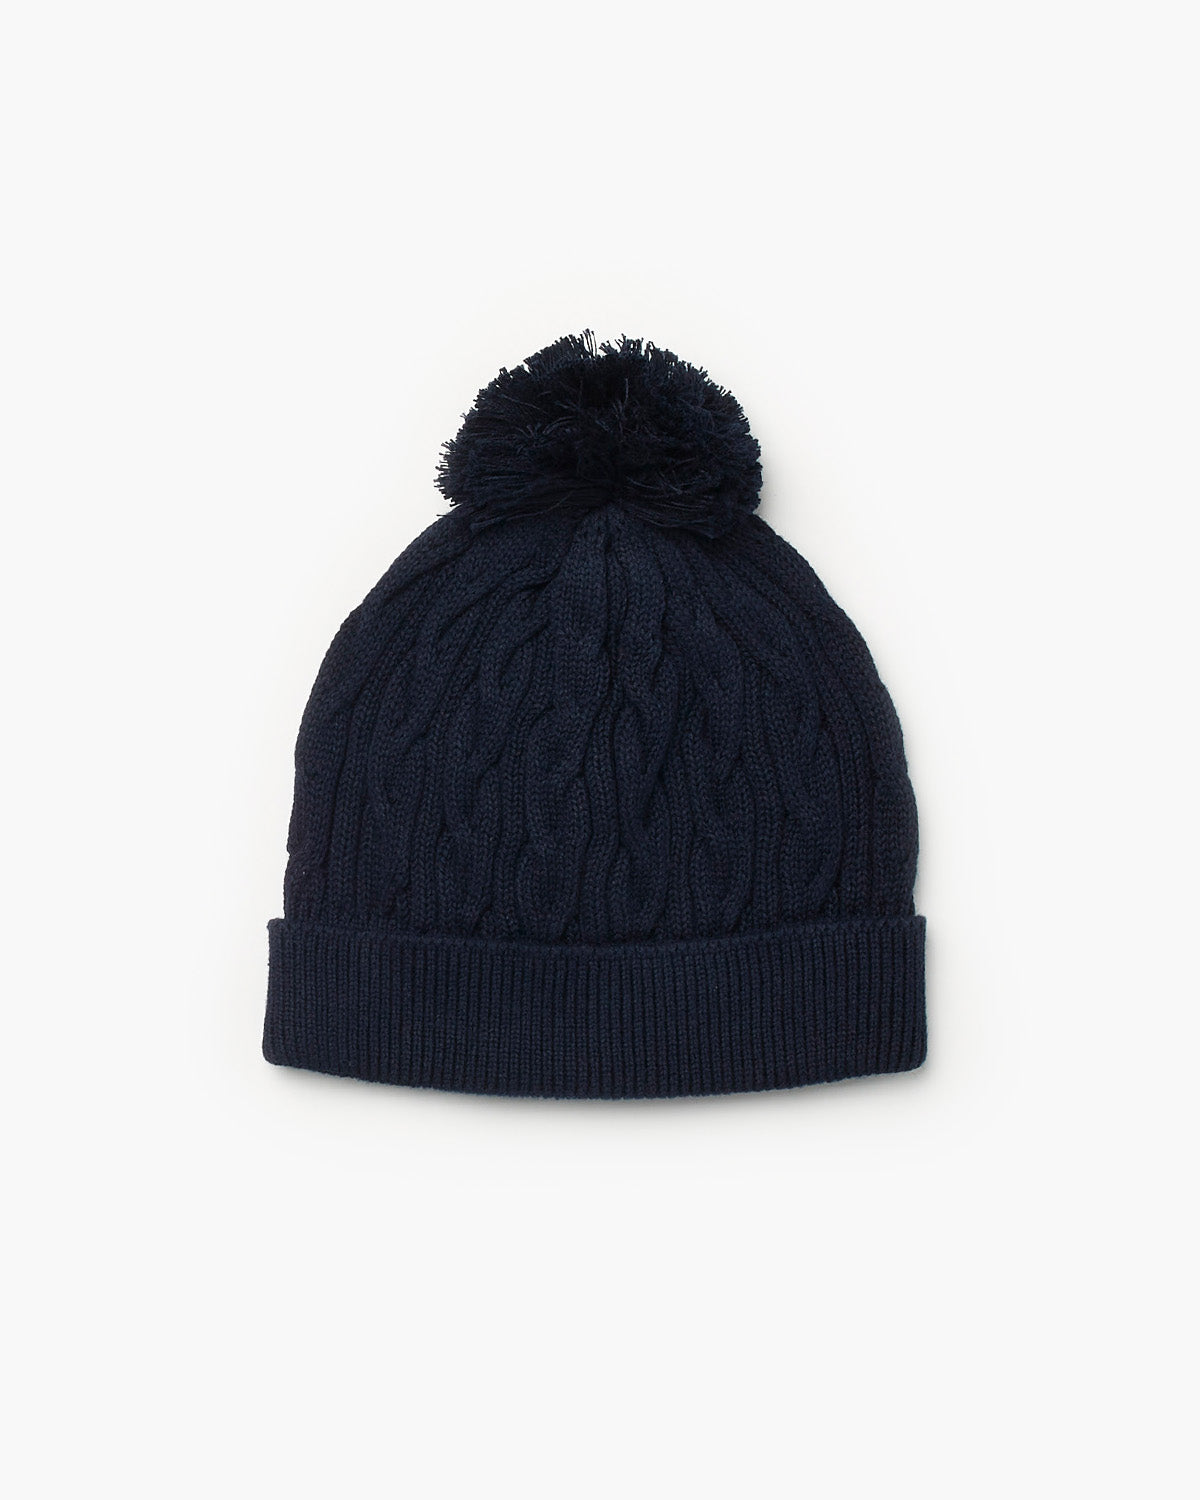 Valley Cable Knit Beanie - Navy